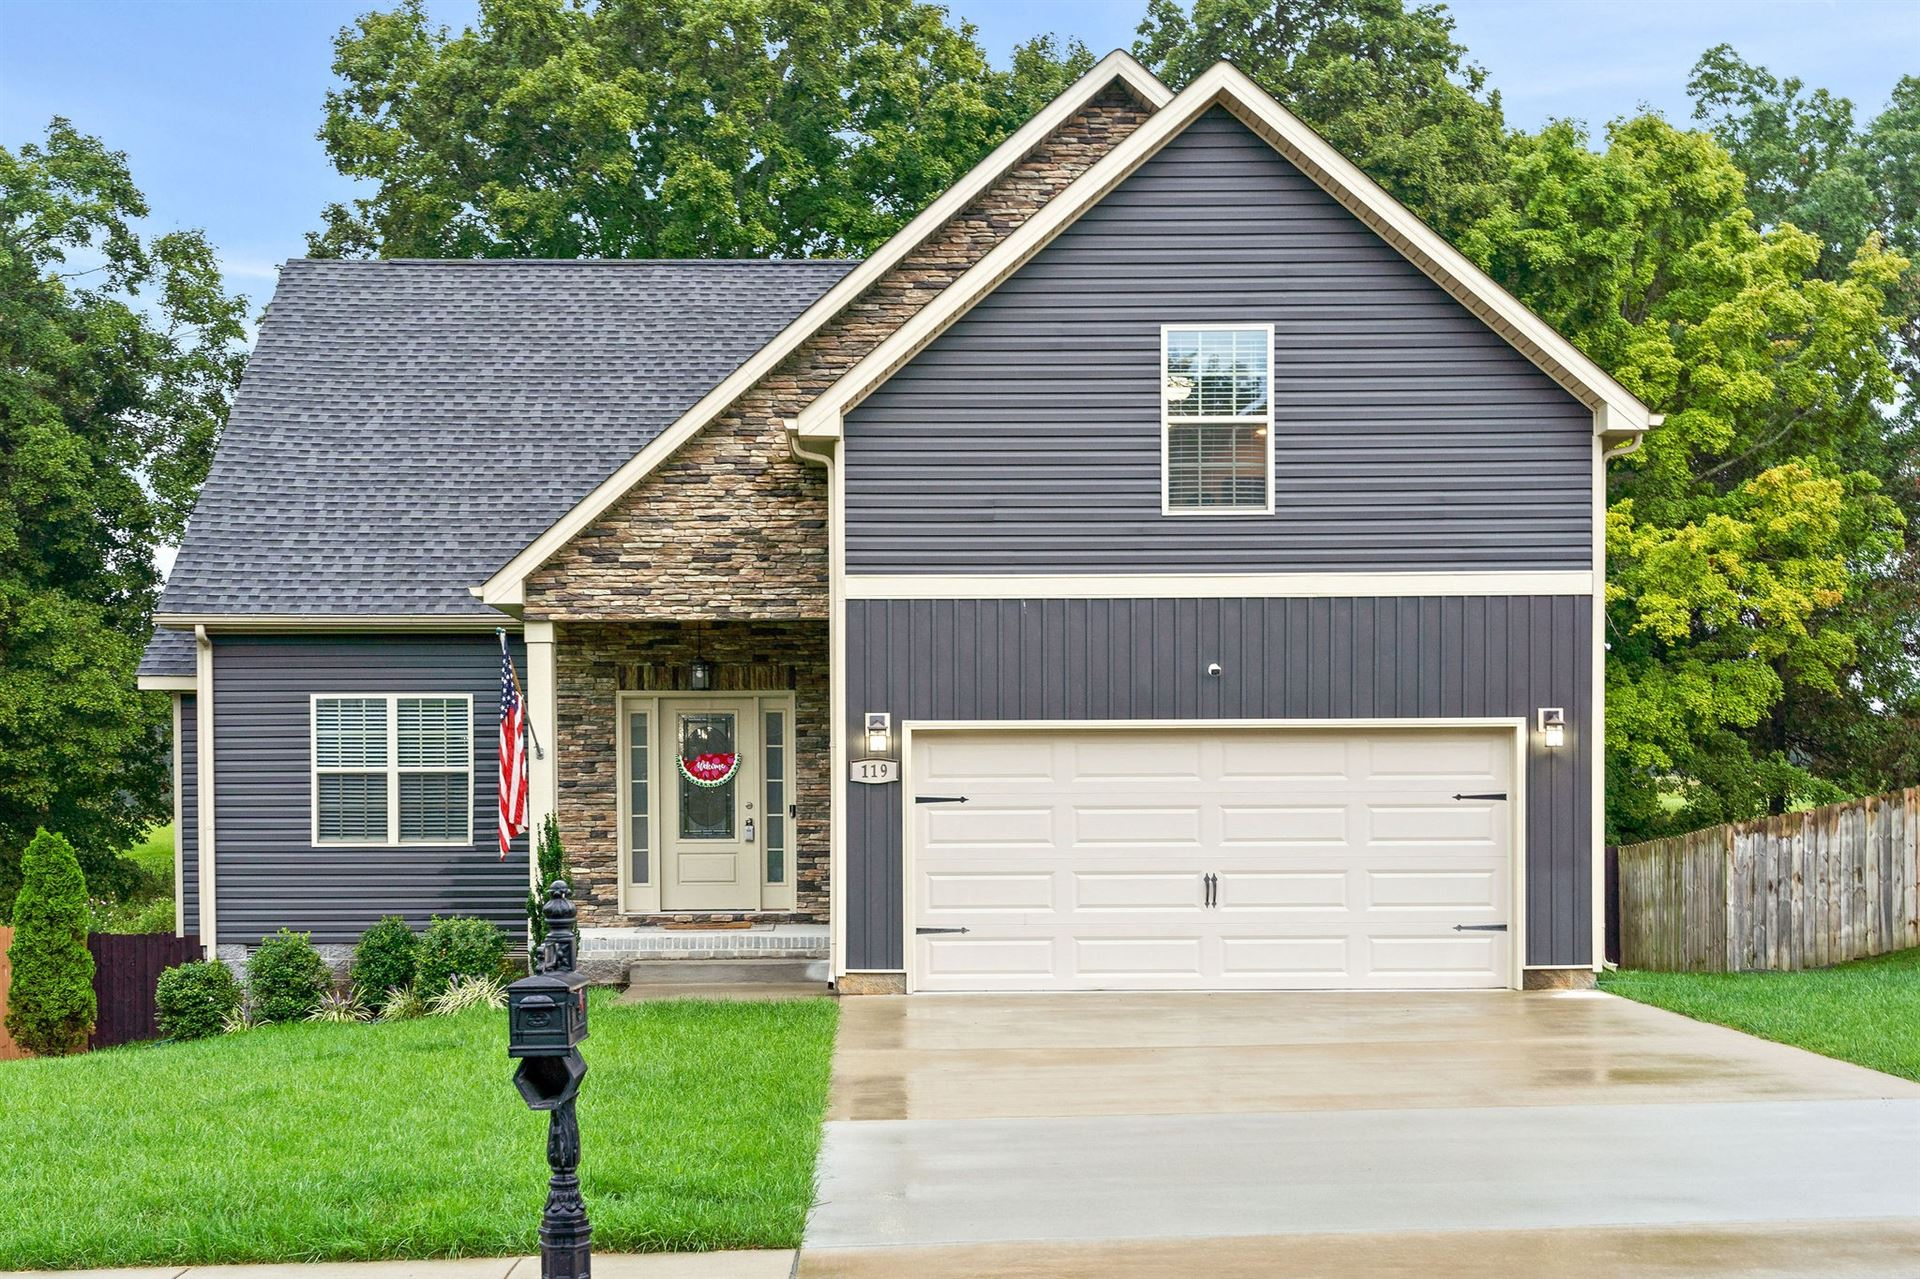 119 Sycamore Hill Dr, Clarksville, TN 37042 - MLS#: 2291486